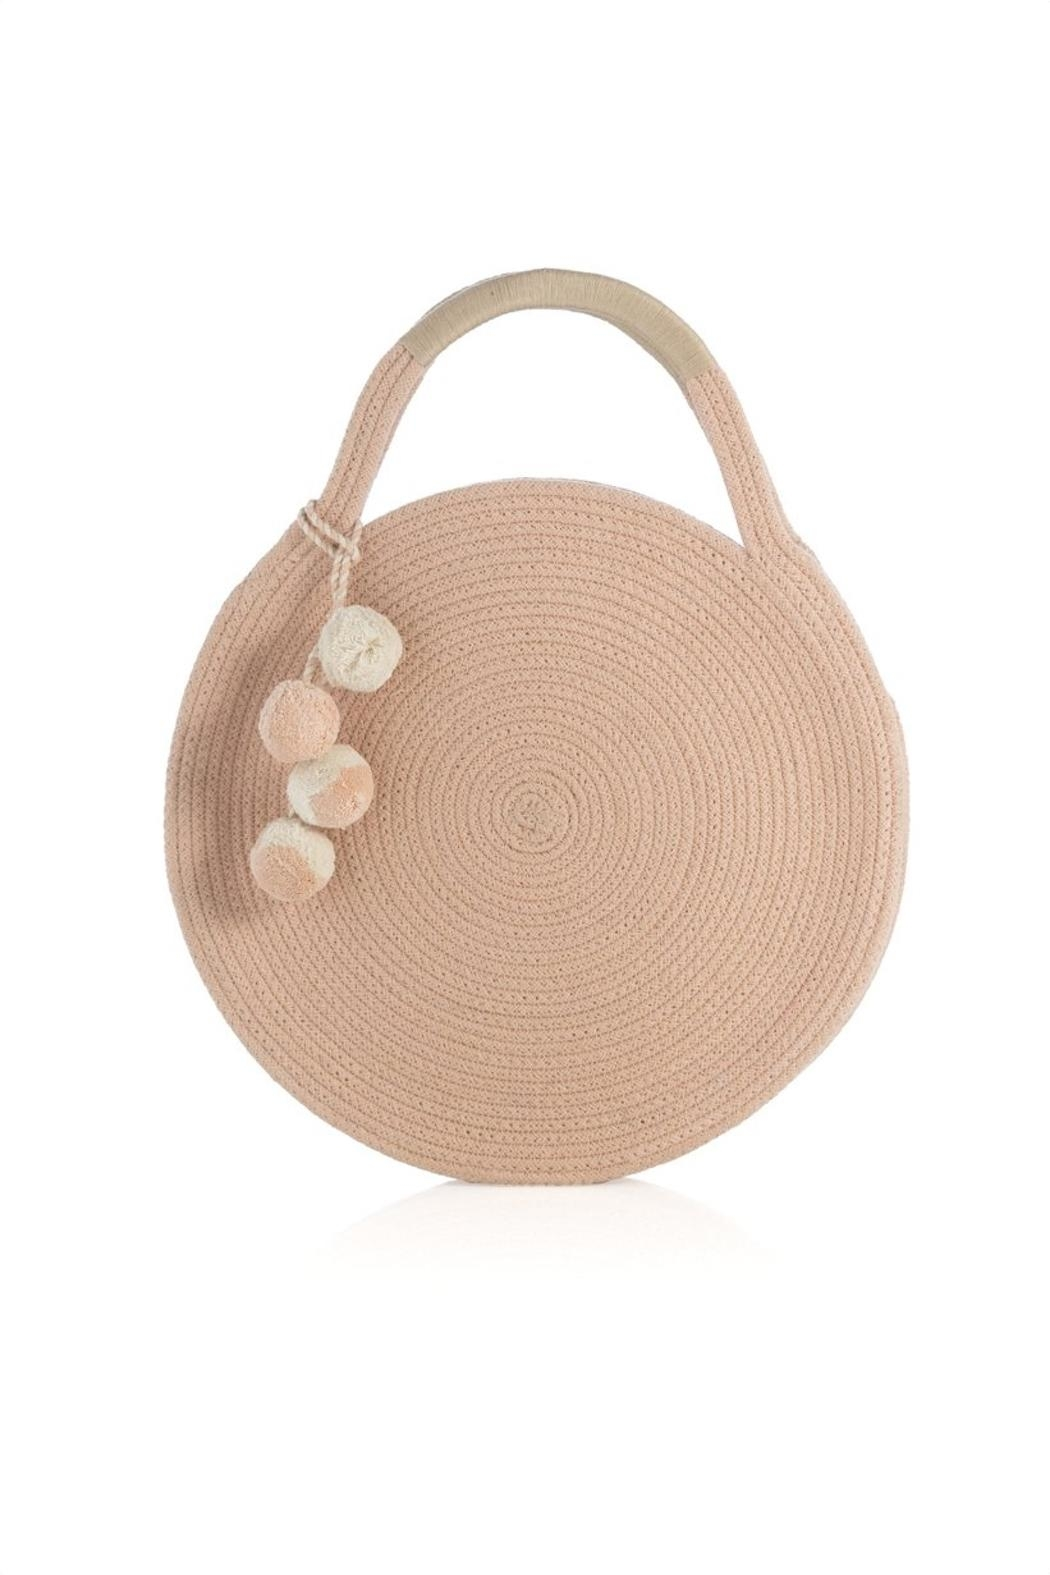 Shiraleah At First Blush Circle Handbag - Main Image